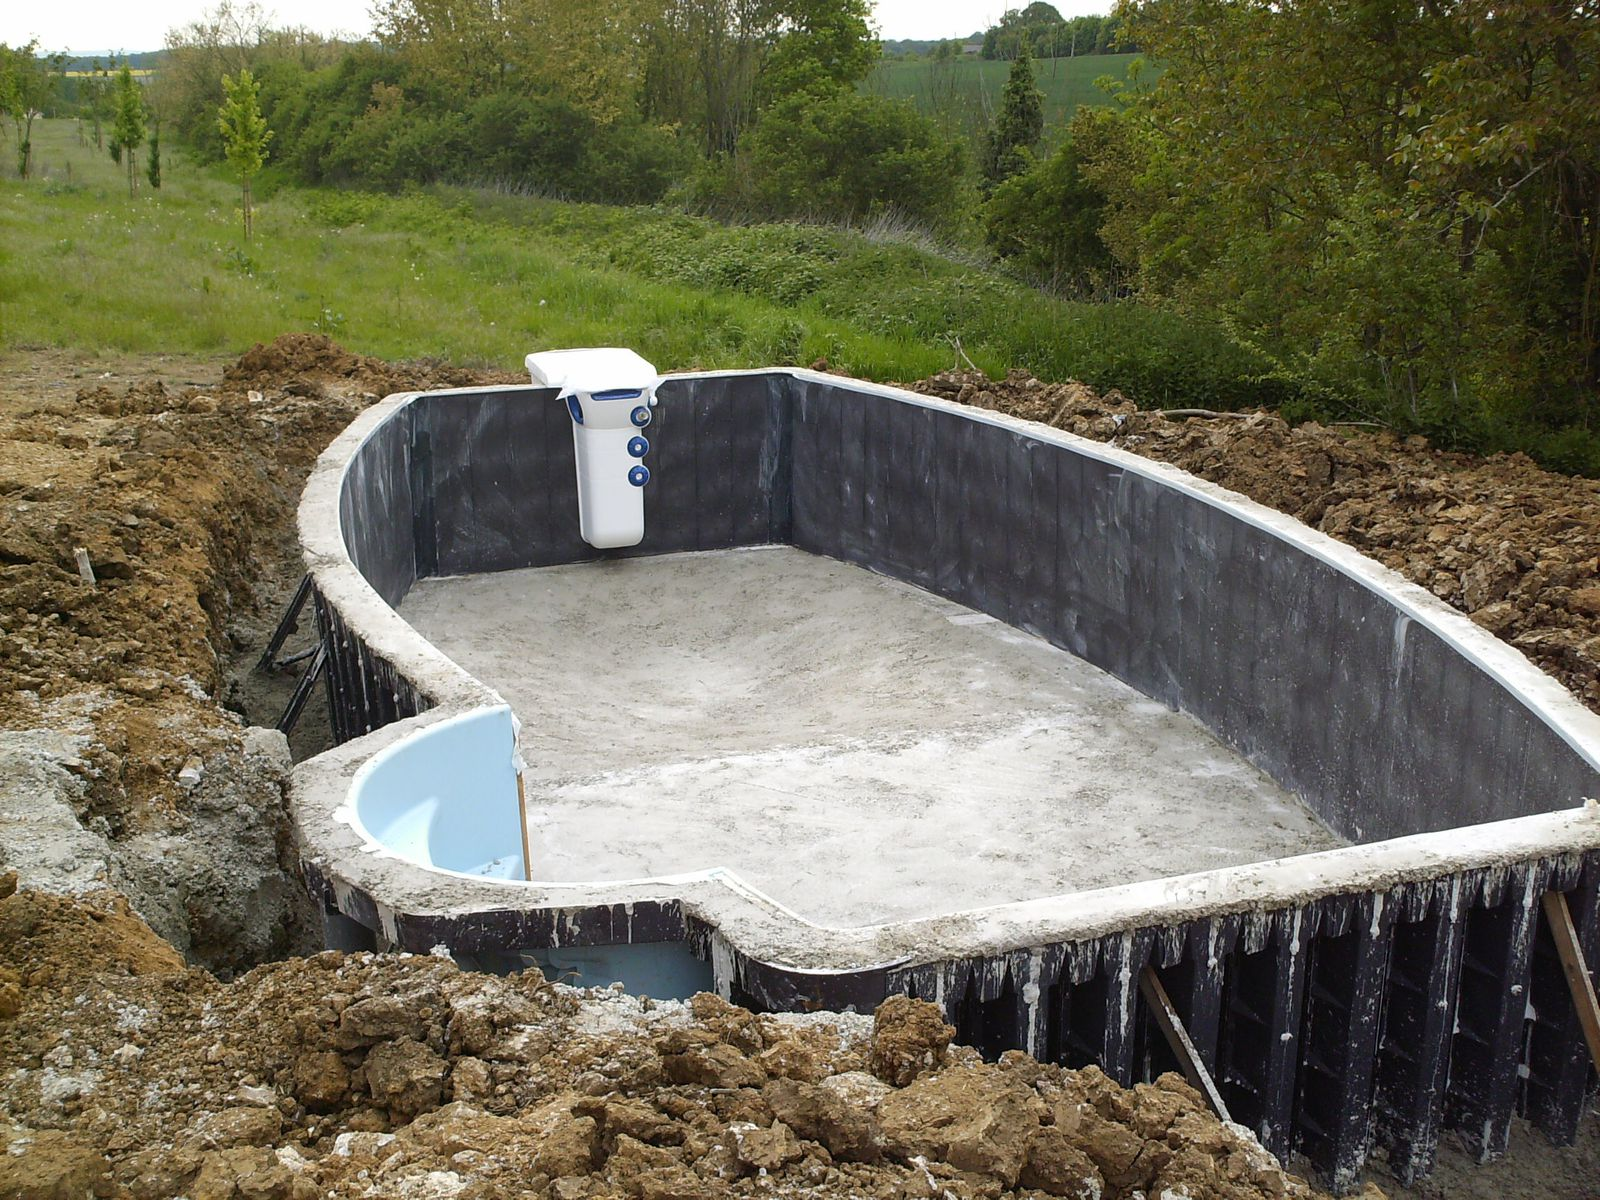 Piscine desjoyaux construction saint etienne 3312 for Construction piscine desjoyaux